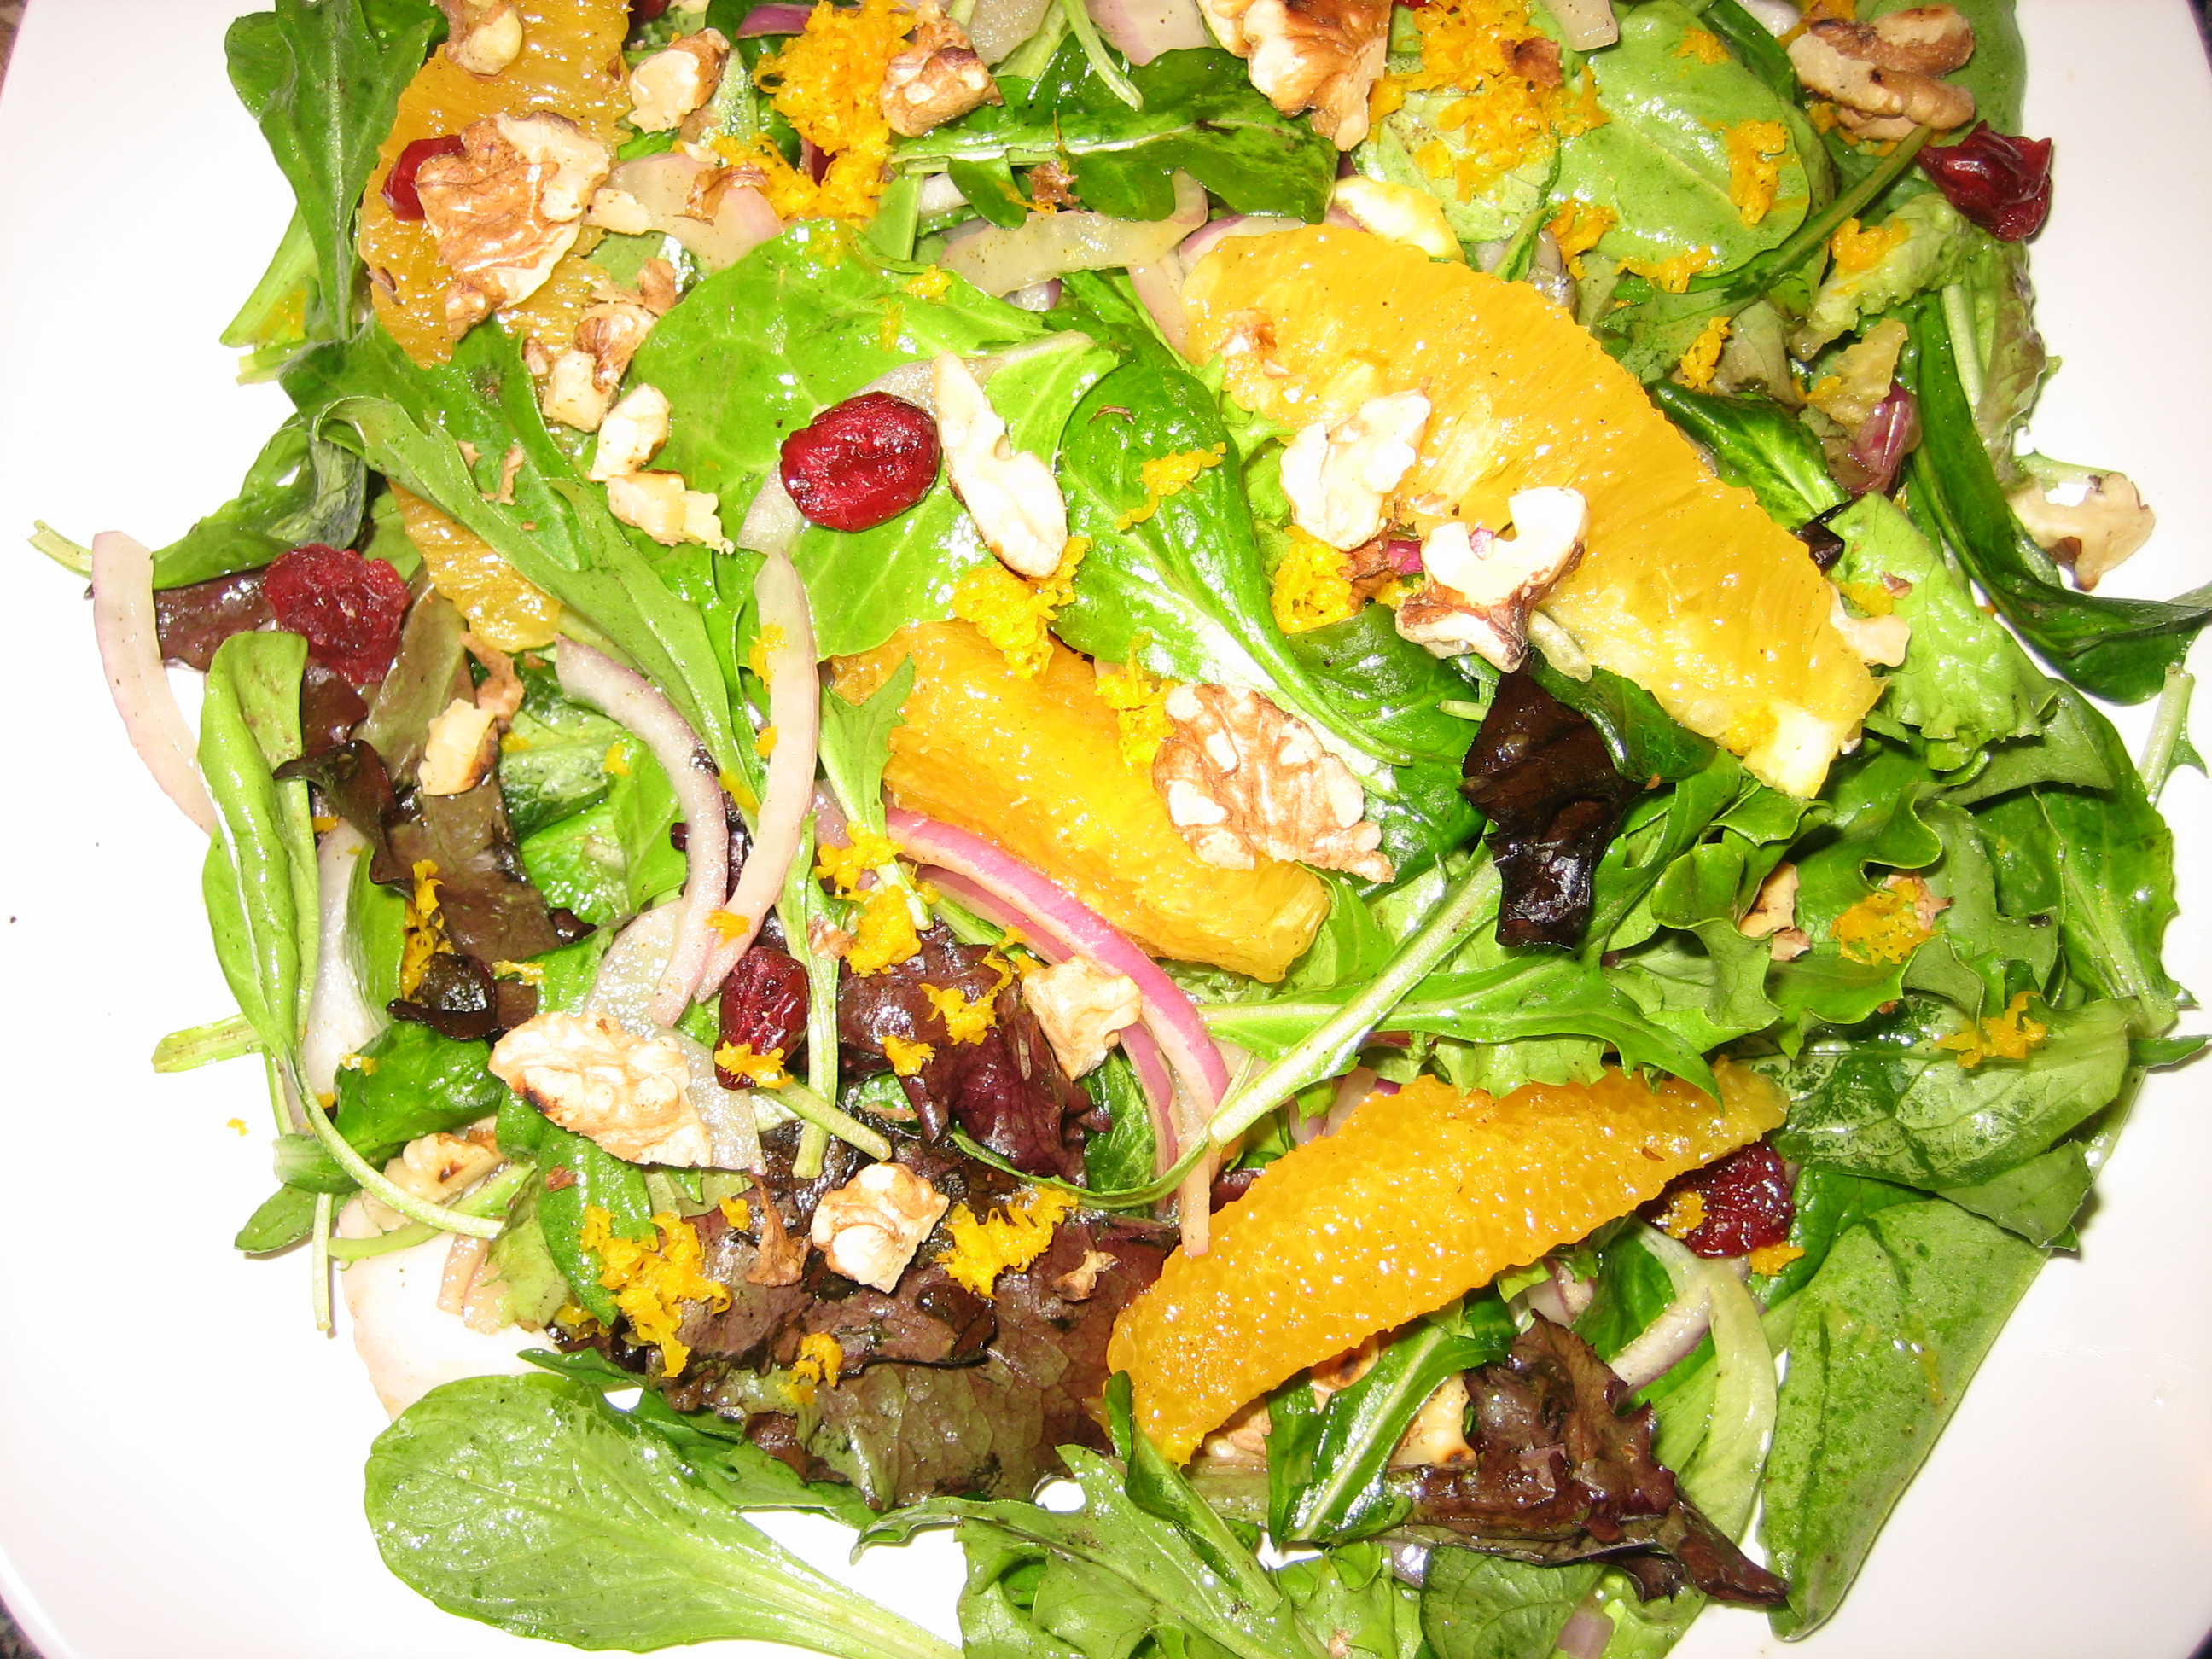 Zesty orange salad